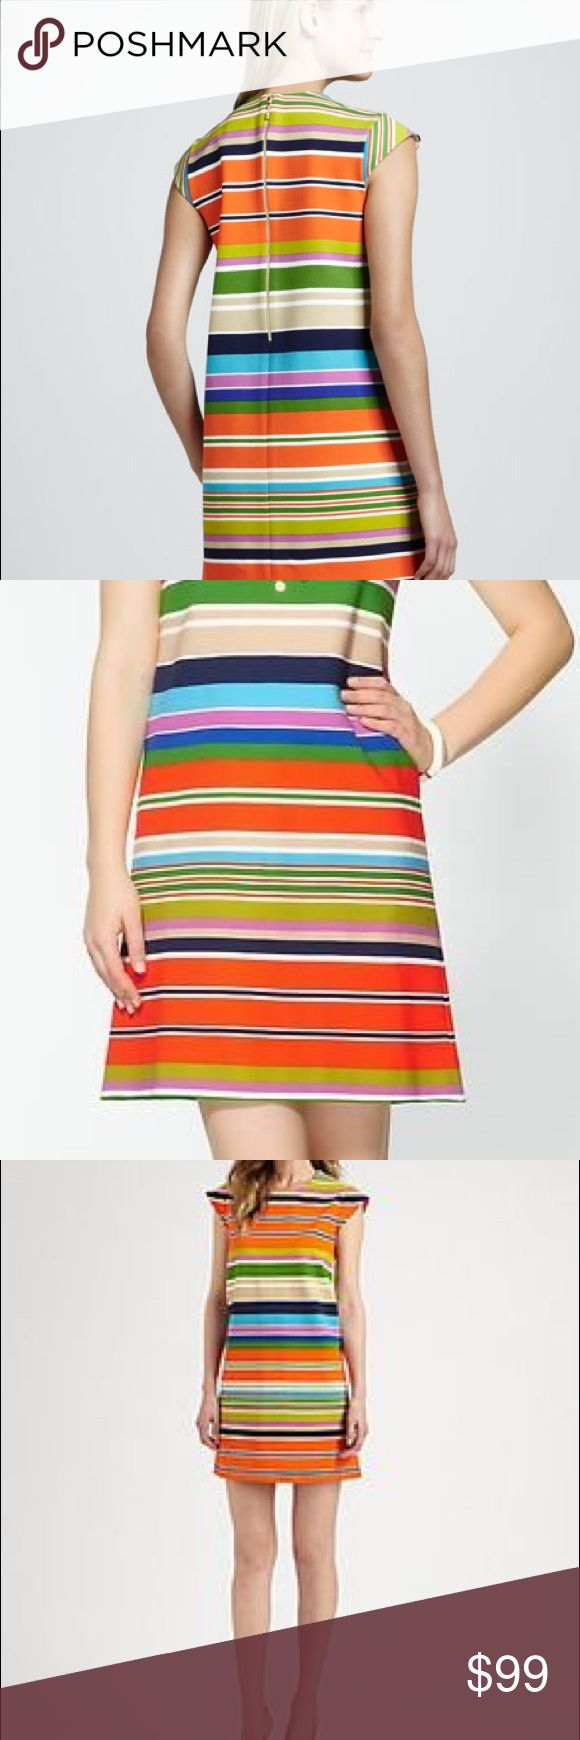 "Kate Spade Nico Dress worn once! Size 14 Step out in a sophisticated stripe that is distinctively kate spade new york. With its cap sleeves and exposed back zipper, the nico dress gives the shift silhouette new life for spring. Mixed stripes. Round neckline; cap sleeves. Straight skirt. Back zip. Shift silhouette. Approx. 36""L from shoulder to hem. kate spade Dresses Midi"